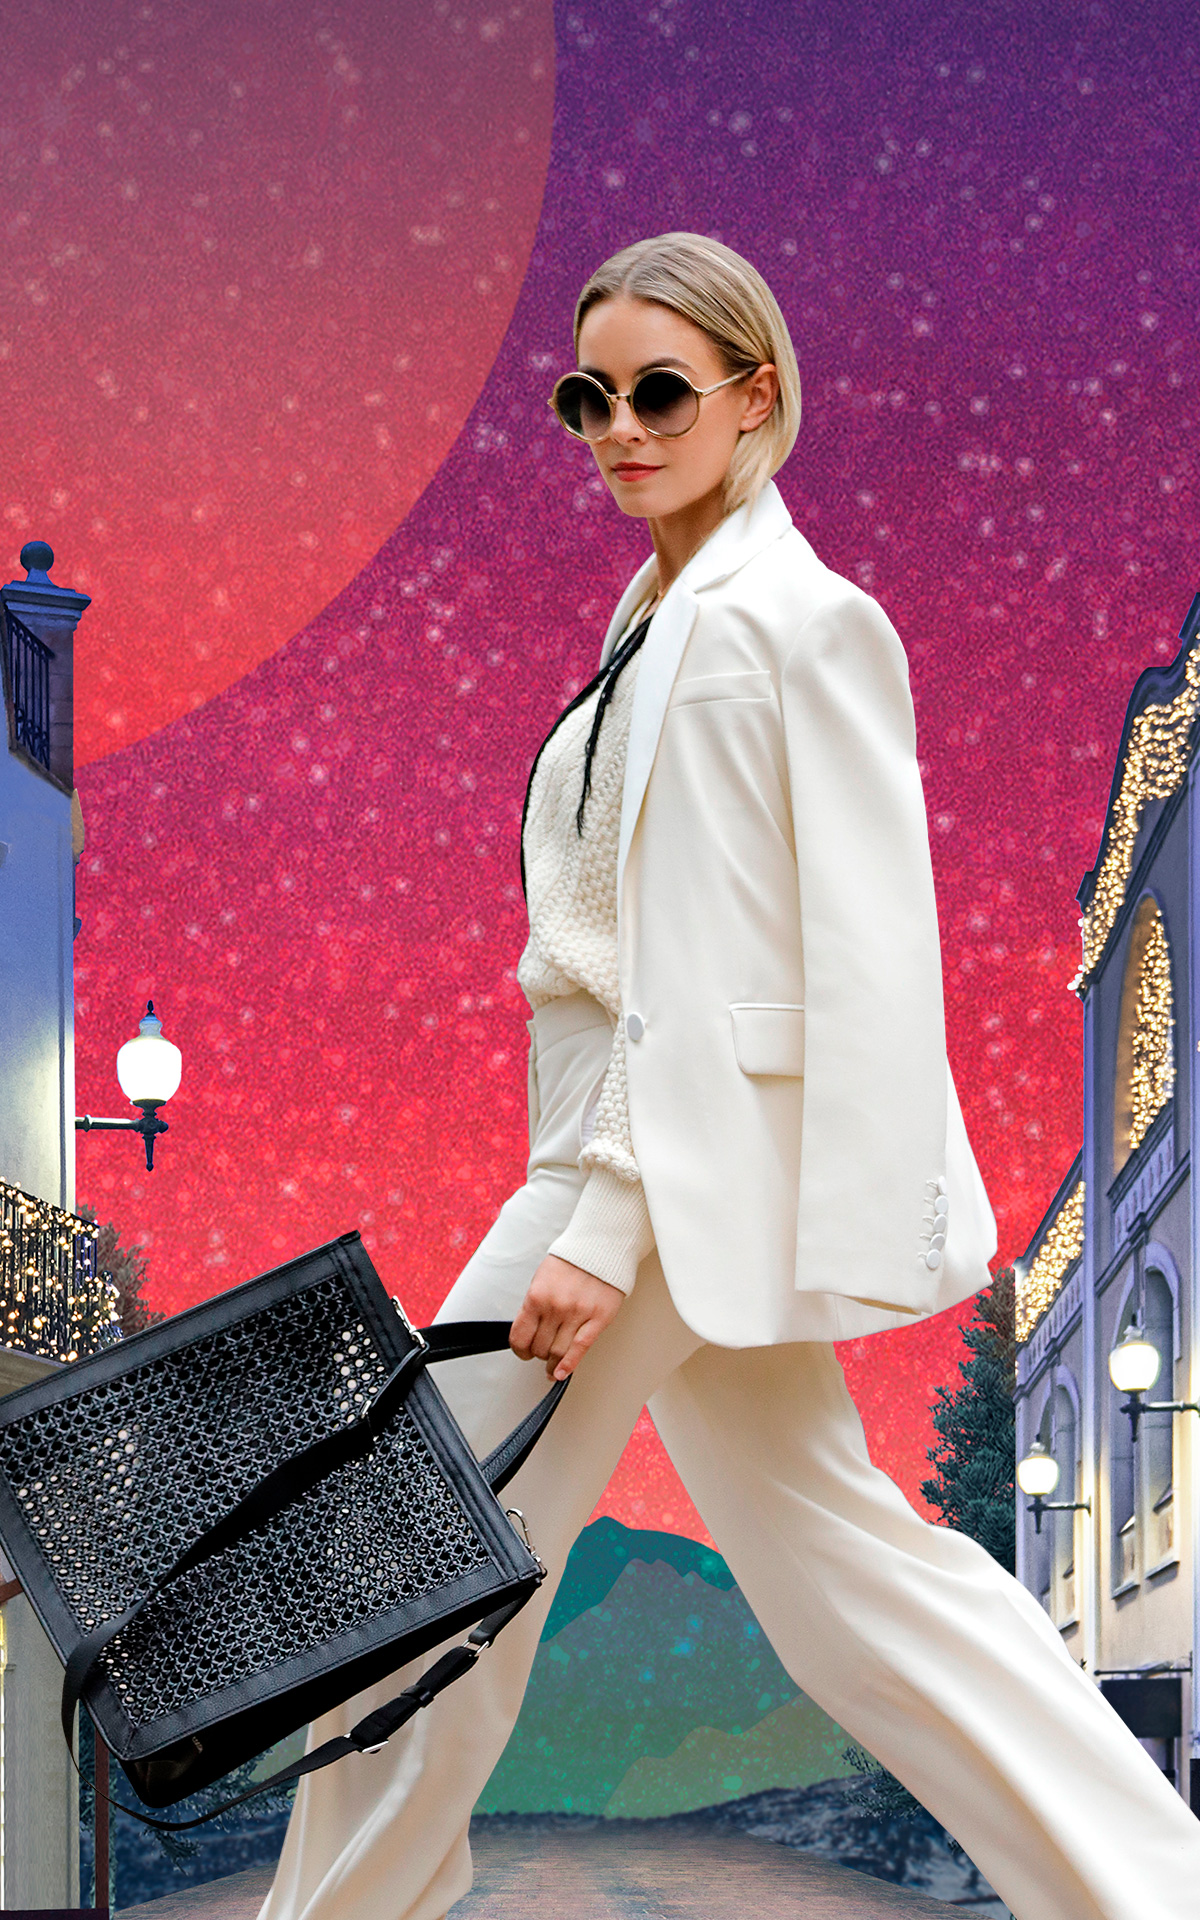 Woman with a white suit and a black bag walking